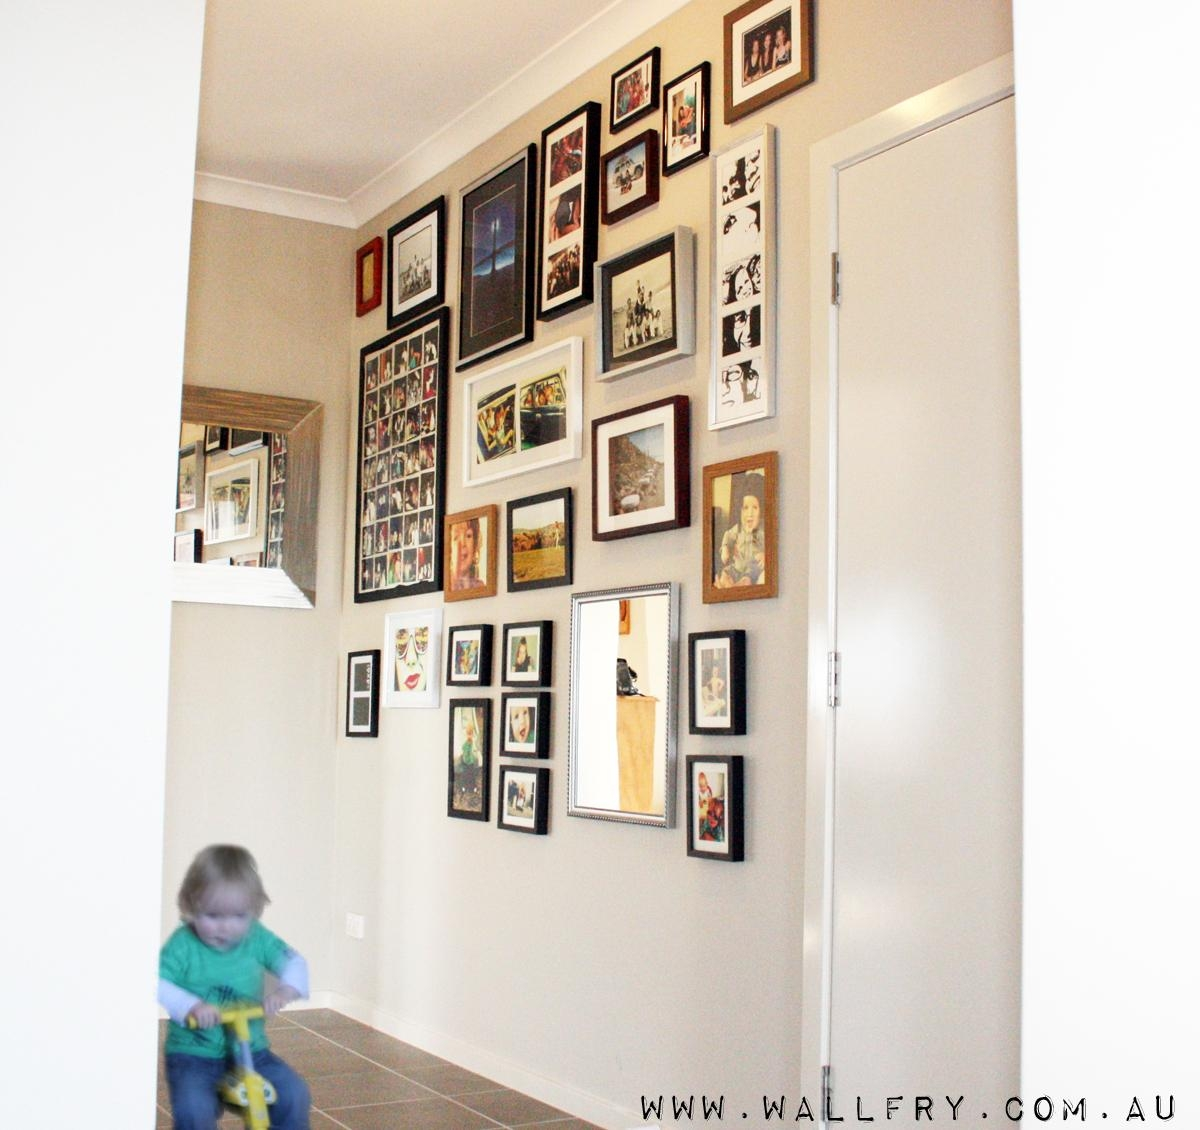 Wall Frame Collage – Photos And Art Inside Wall Art Frames (Image 18 of 20)